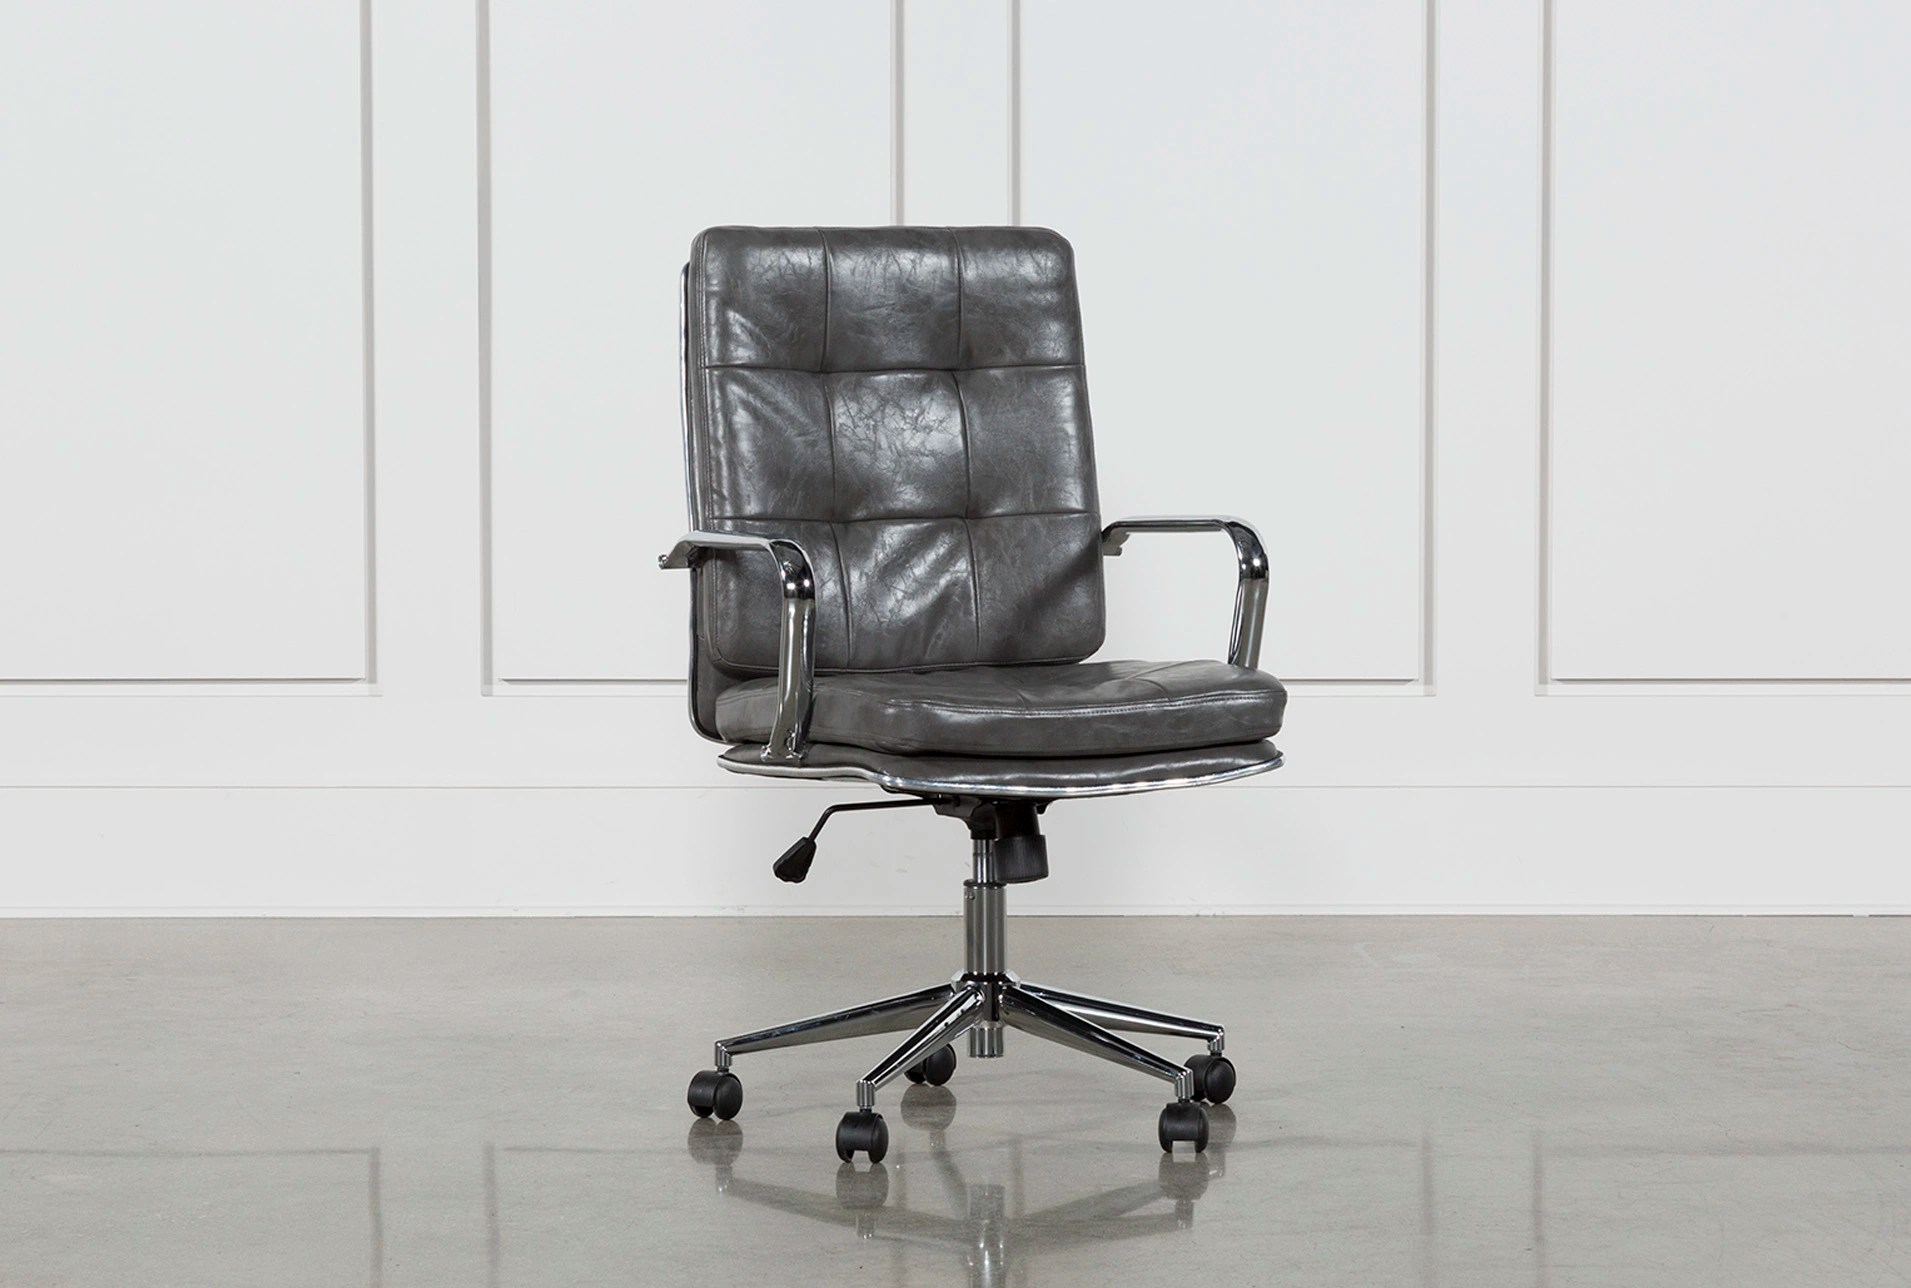 medium resolution of norton tufted office chair qty 1 has been successfully added to your cart